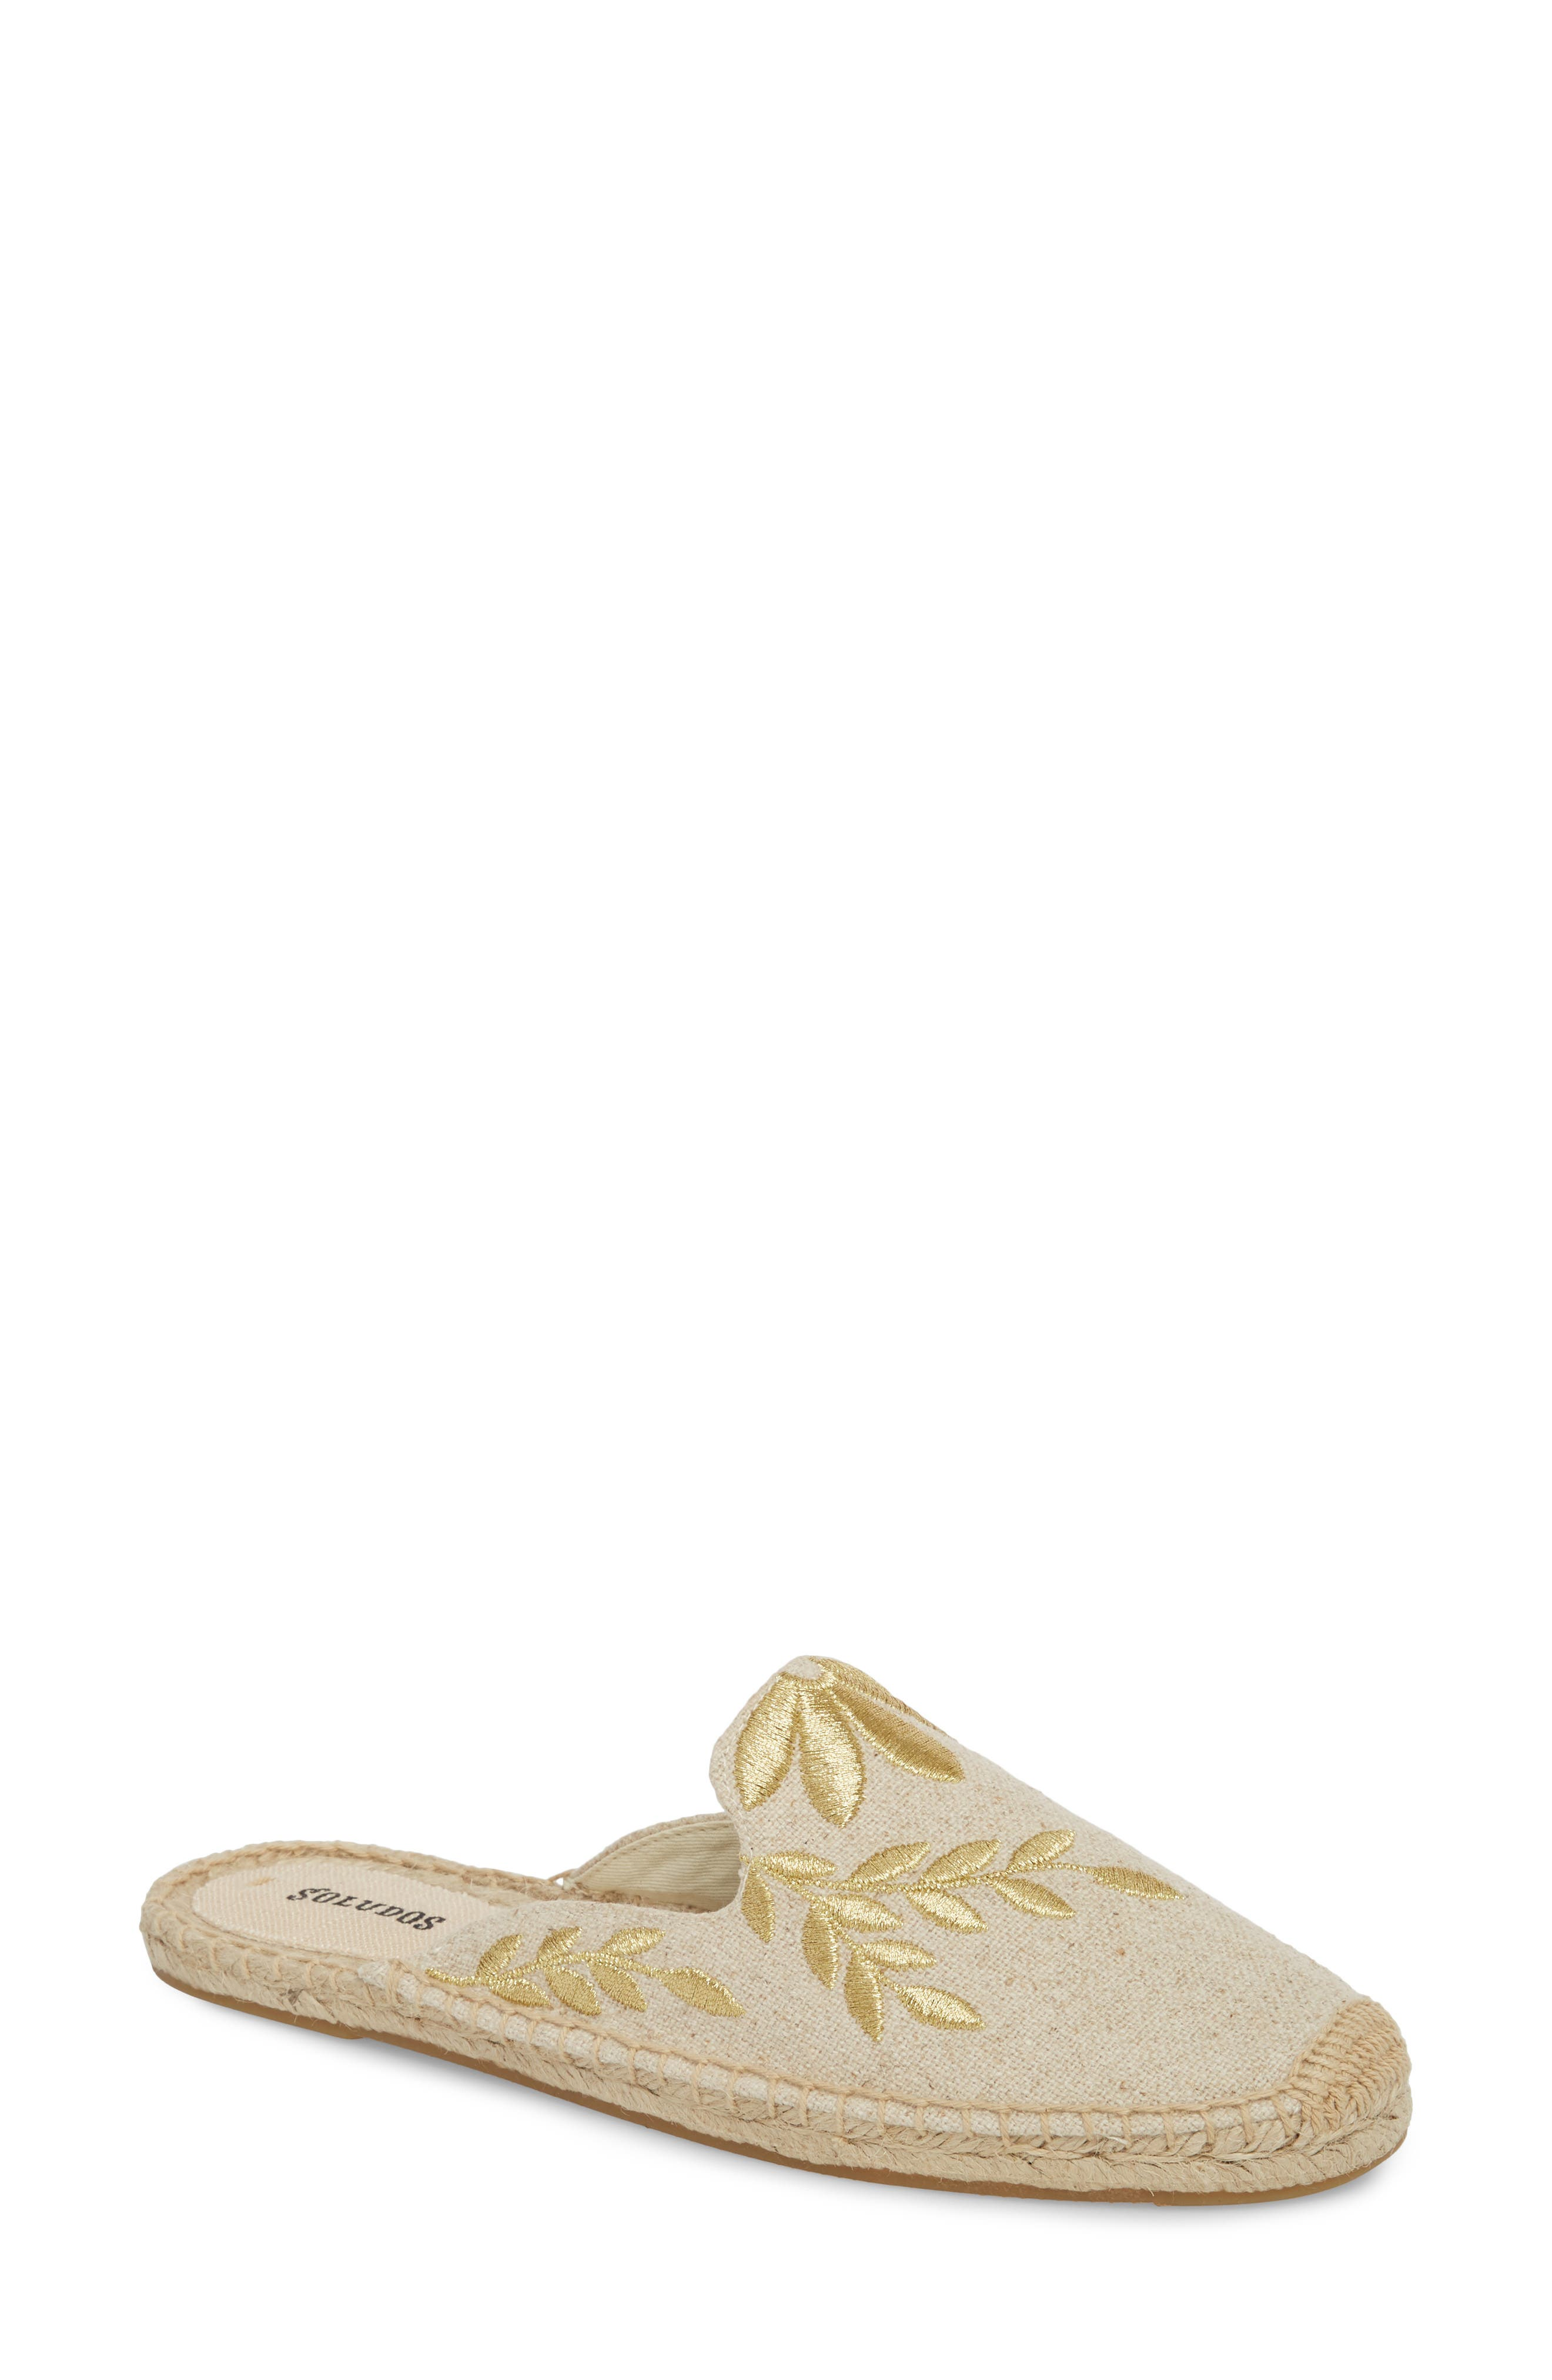 Leaf Embroidered Loafer Mule,                         Main,                         color, Sand/ Metallic